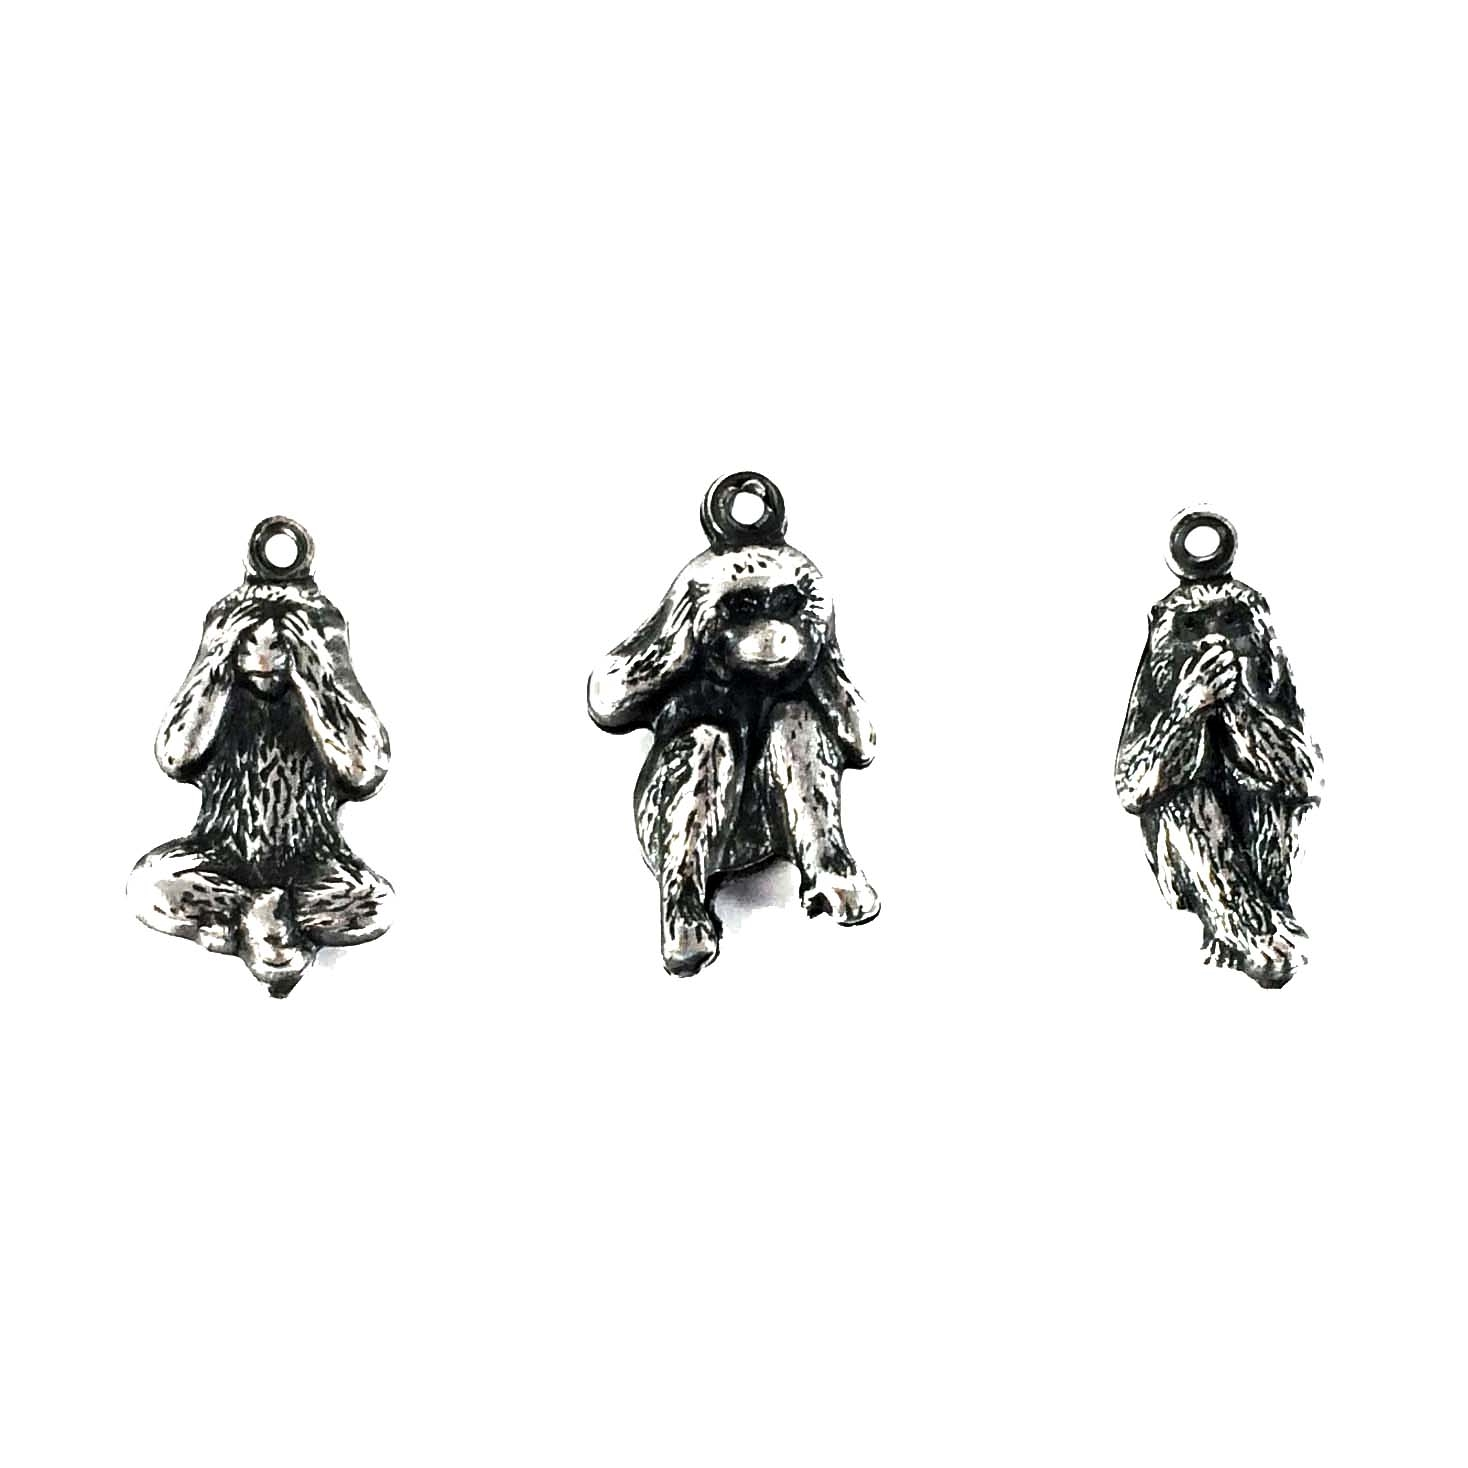 Brass Monkeys, See No, Hear No, Speak No, silverware, antique silver,  Puffy charms, 16mm, Set of 3, Monkeys, Charms, Brass Stamping, Jewelry Findings, Charm Accents, Pendent, Two Sided, us made, vintage, Nickel Free, B'sue Boutiques,08383